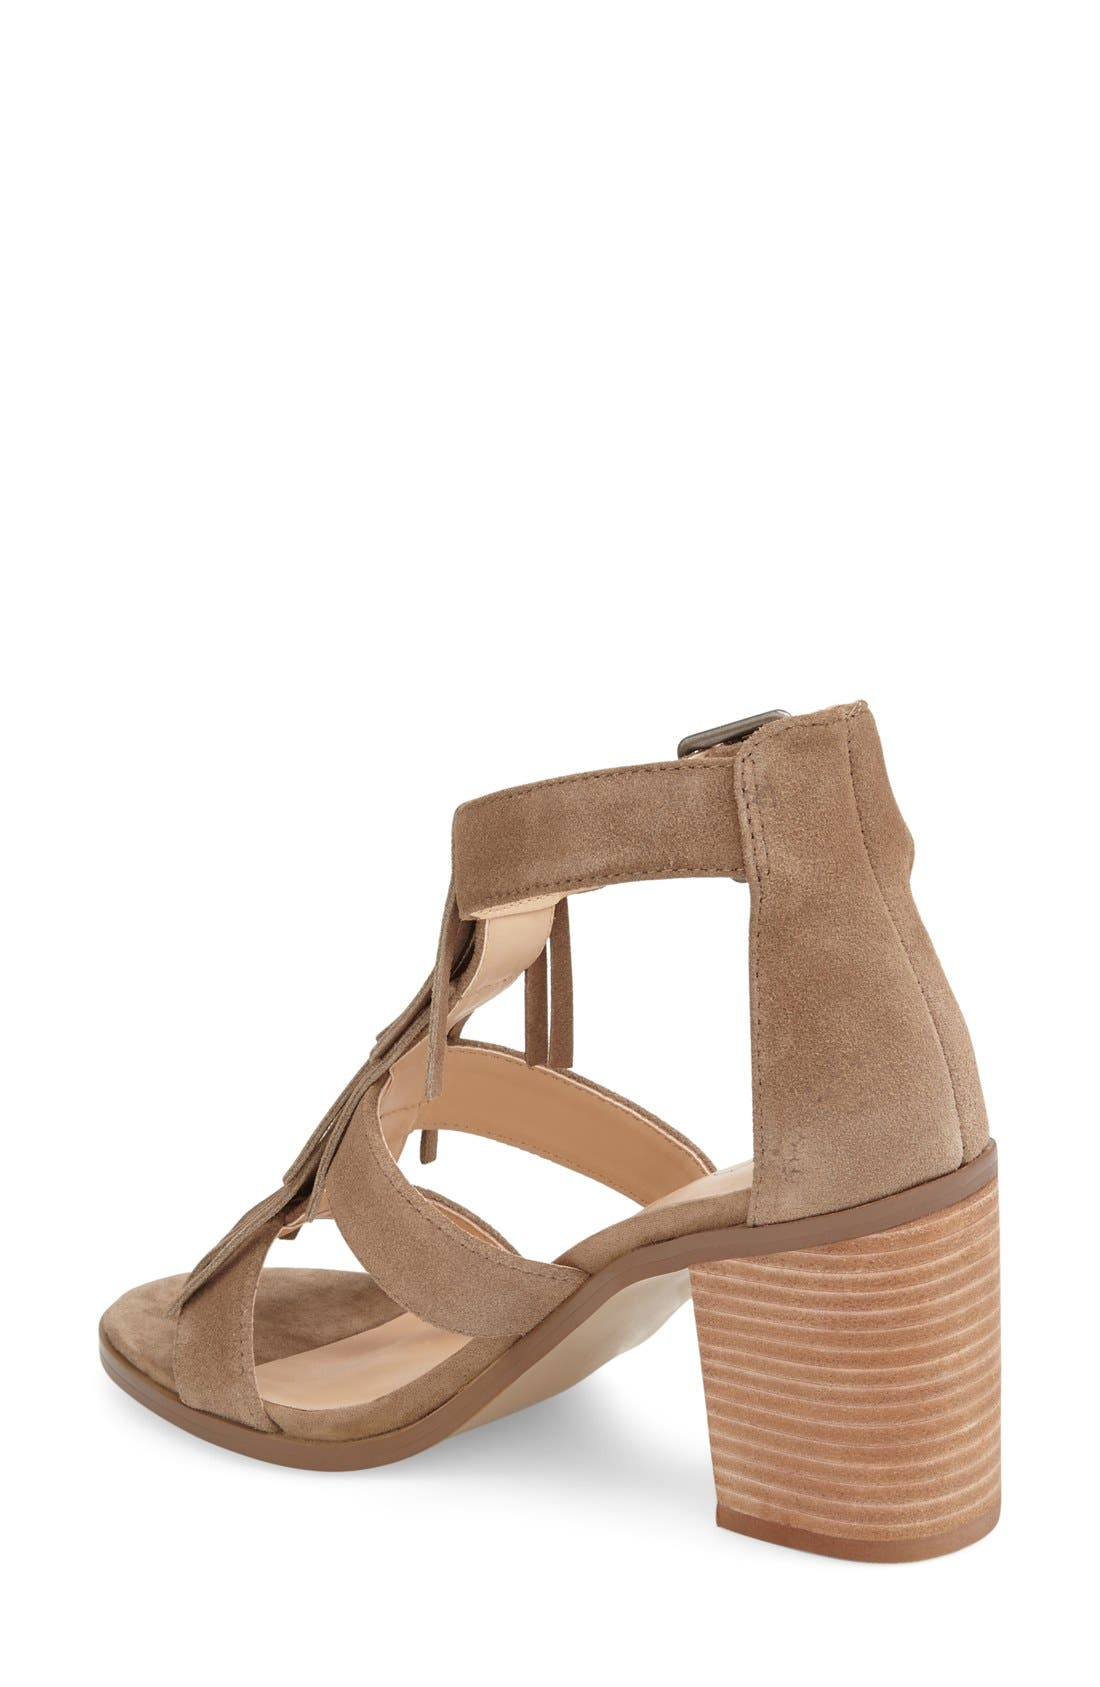 'Delilah' Fringe Sandal,                             Alternate thumbnail 30, color,